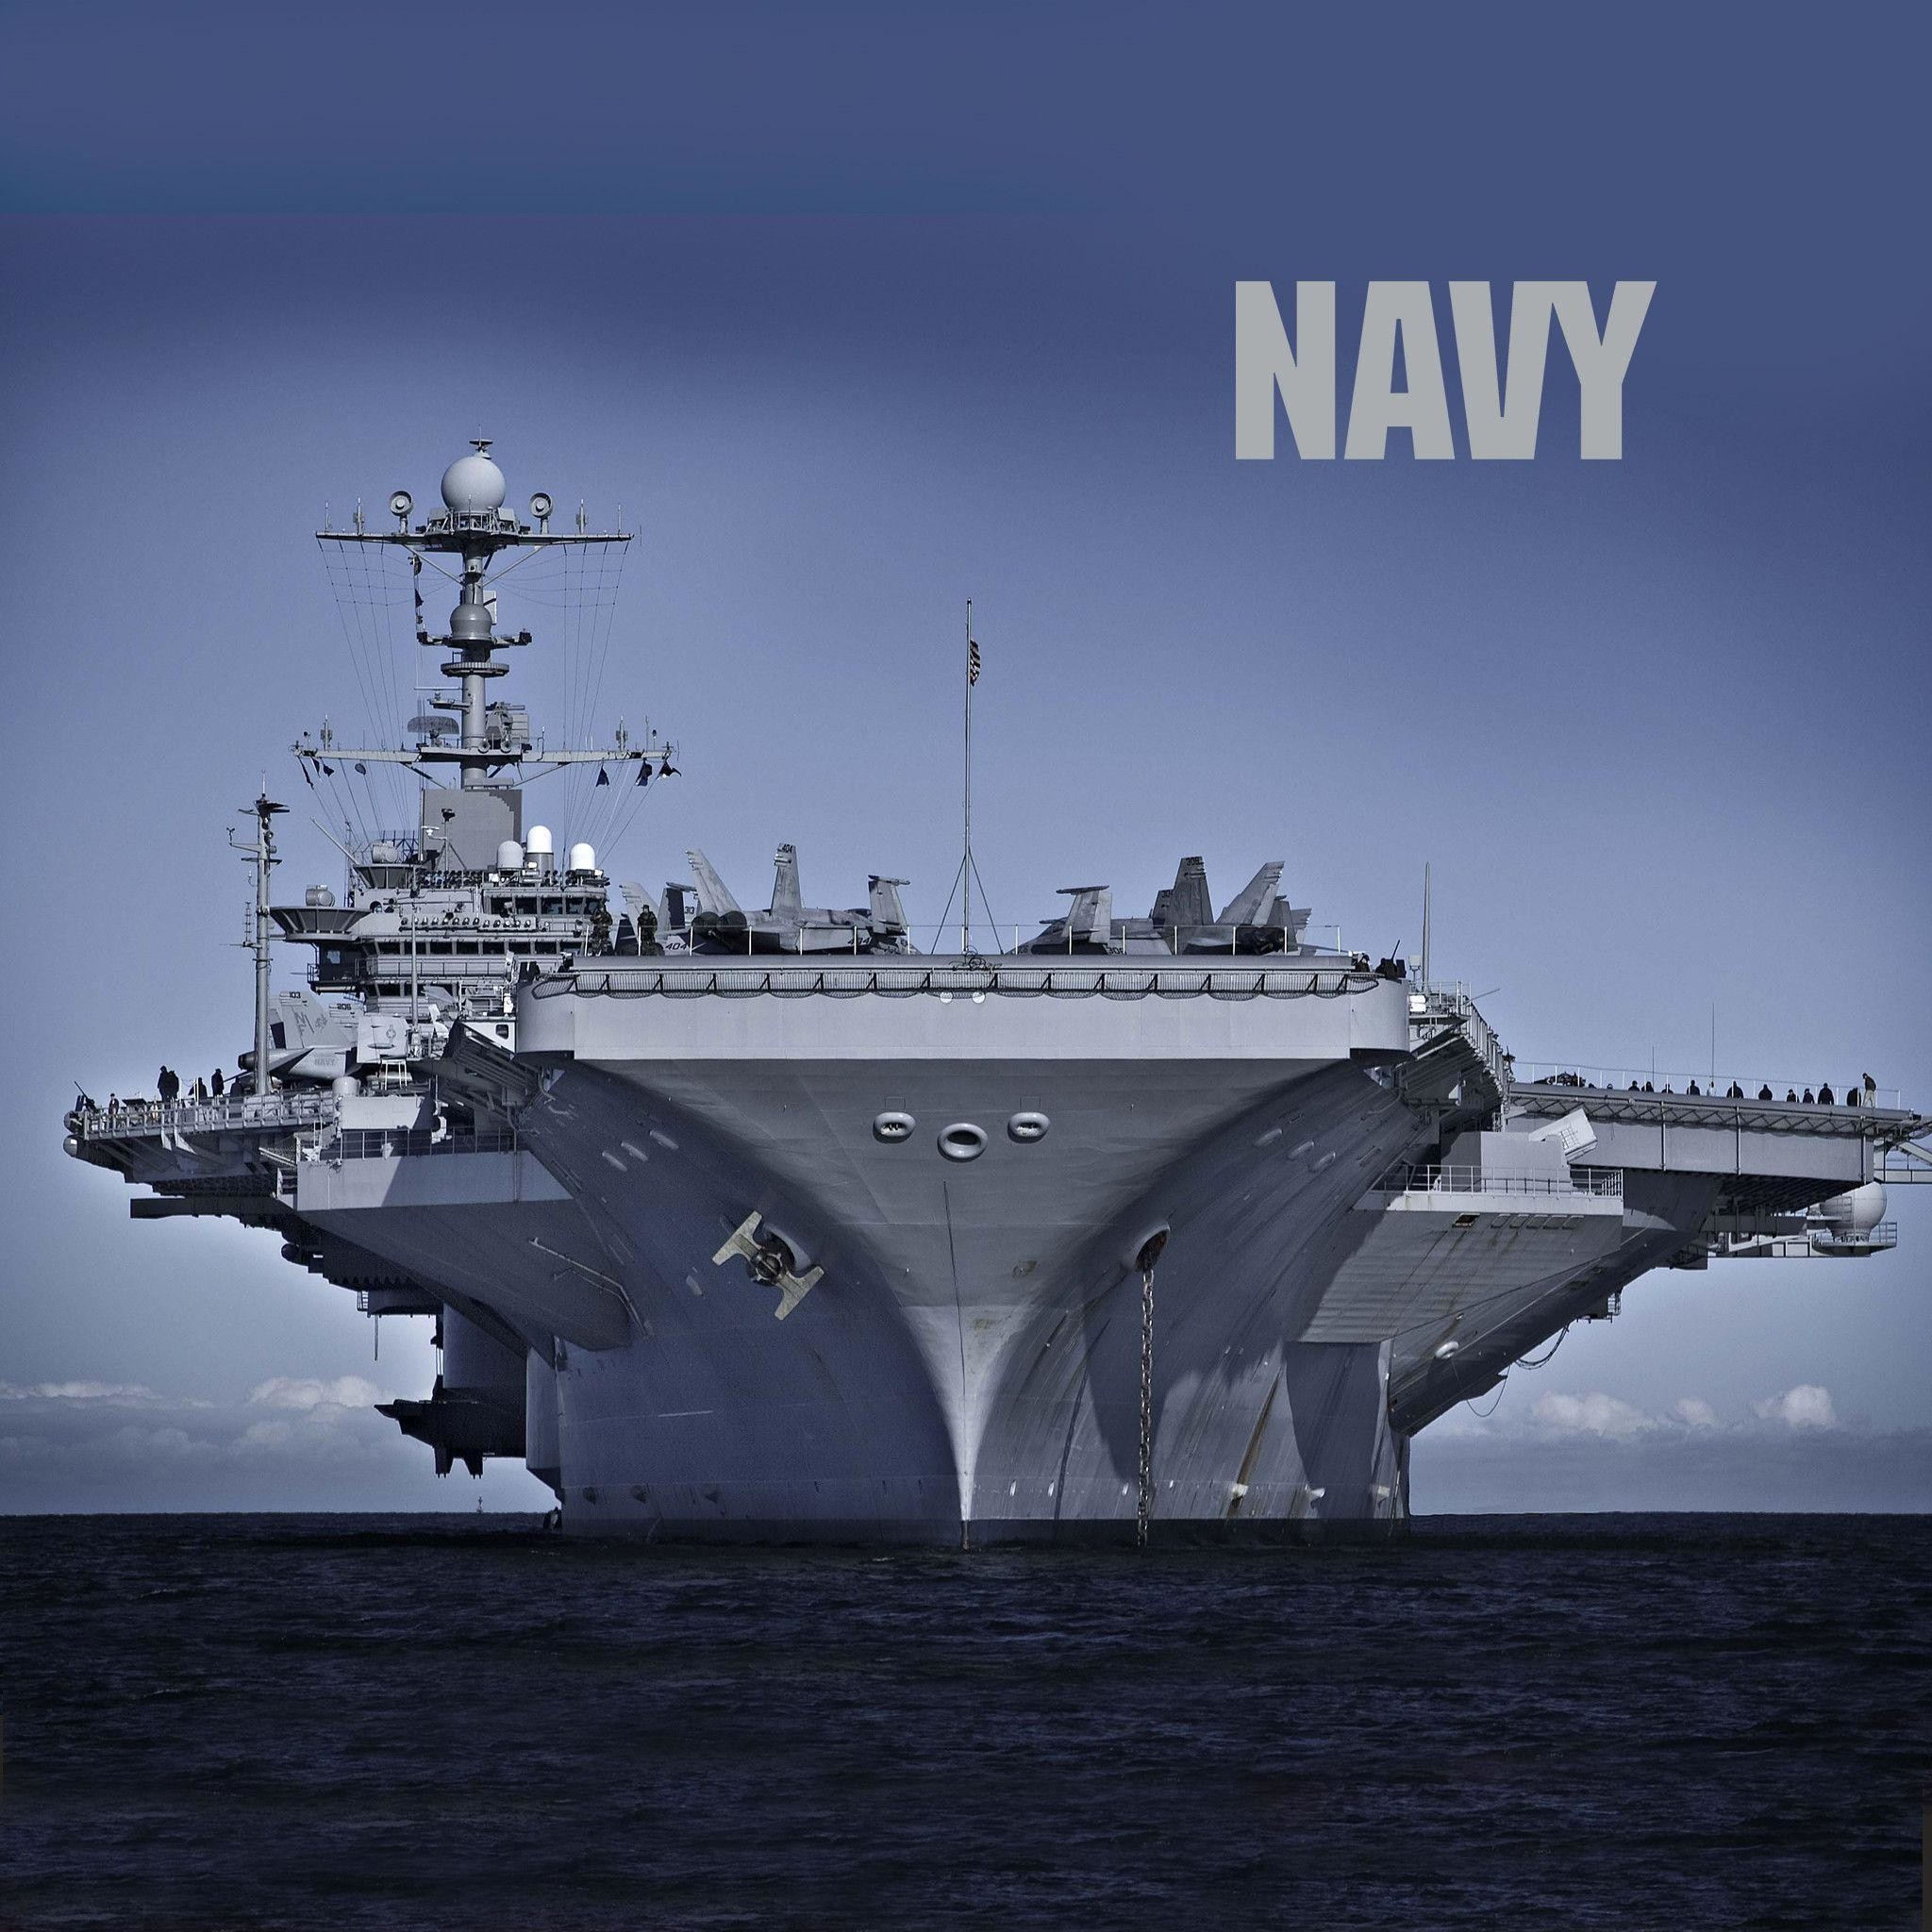 Res: 2048x2048, US Navy Wallpaper for your New iPad with Retina Display.